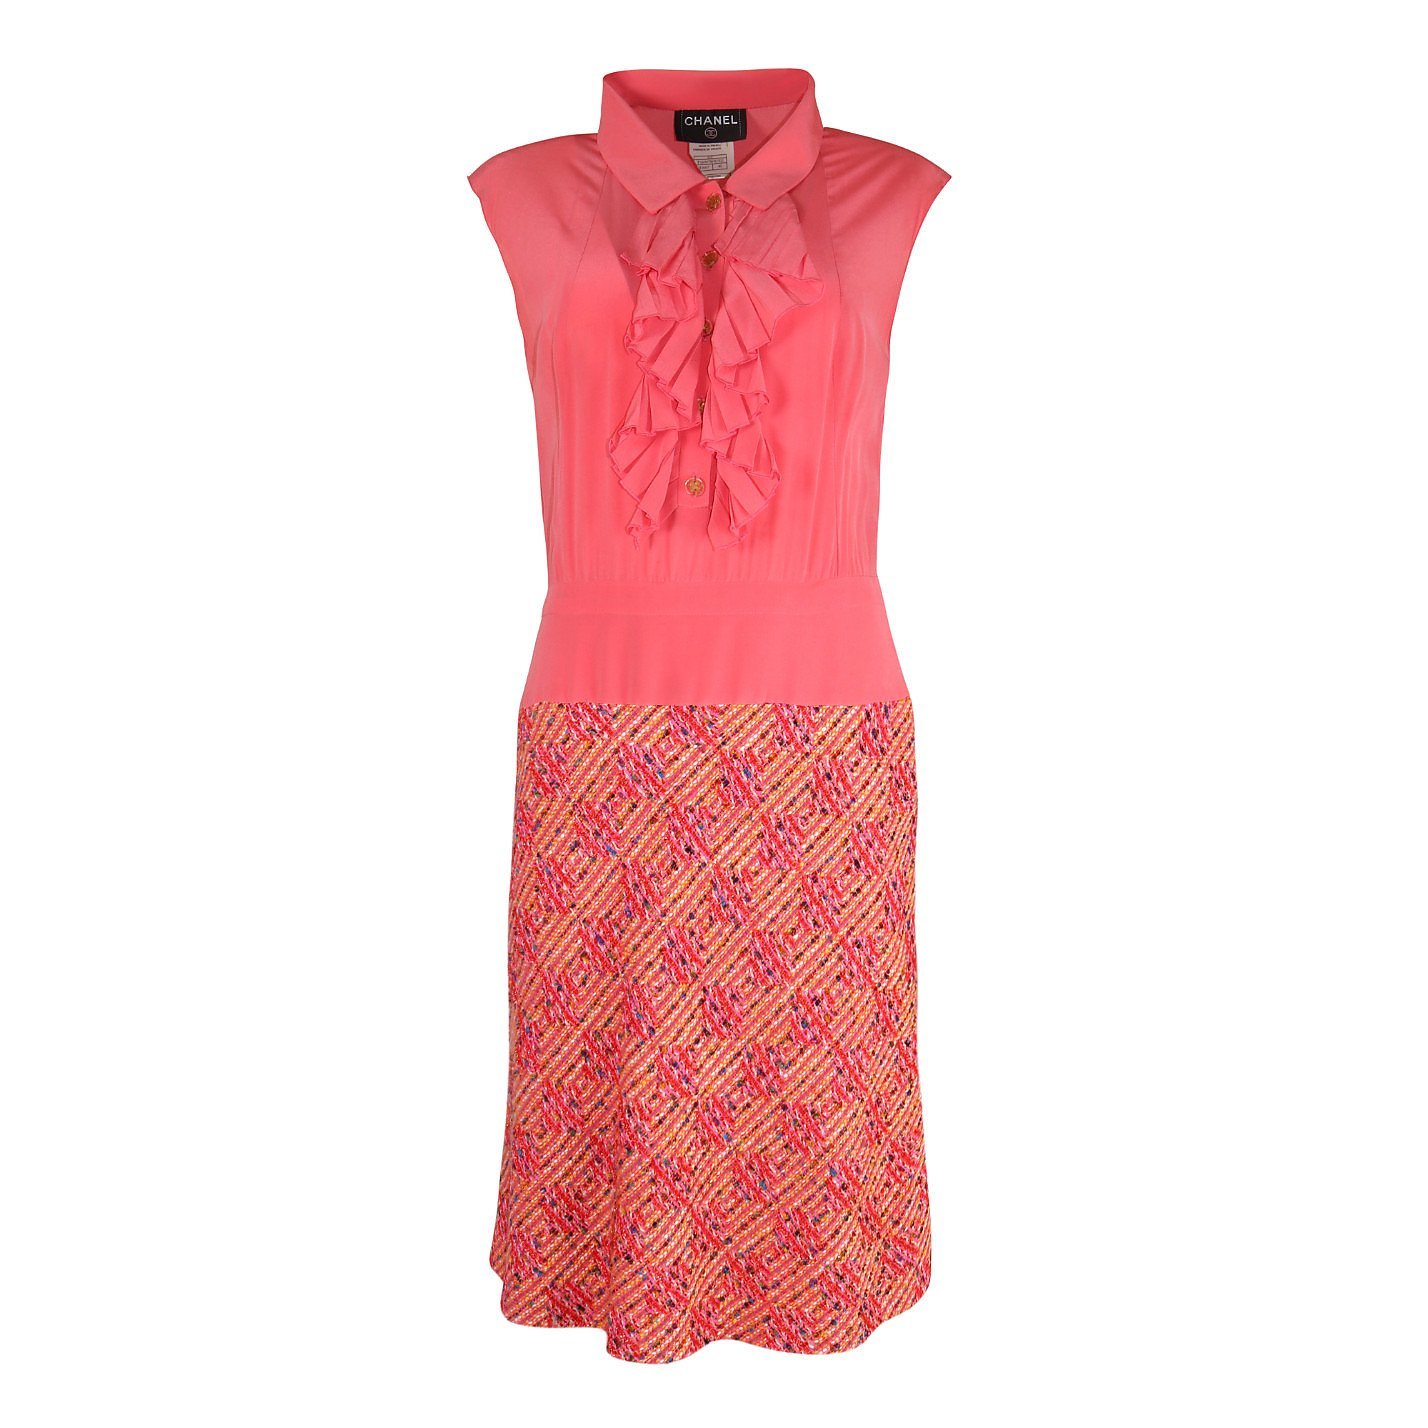 CHANEL Ruffle Dress With IntegratedTweed Skirt